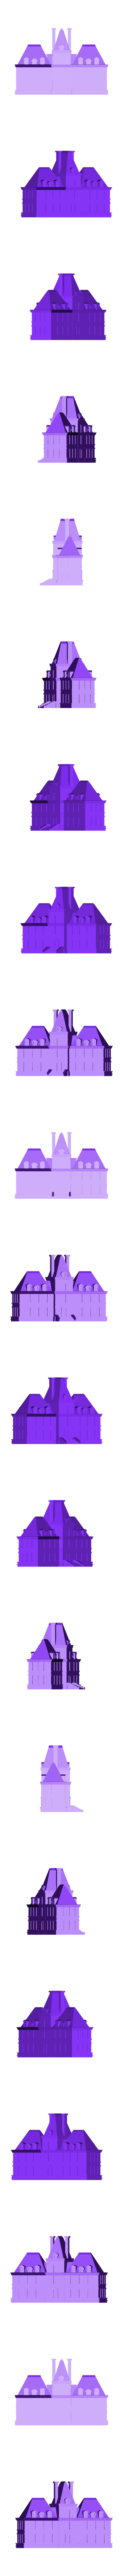 SM_Palace.obj Download free OBJ file Palace • 3D printing model, Colorful3D